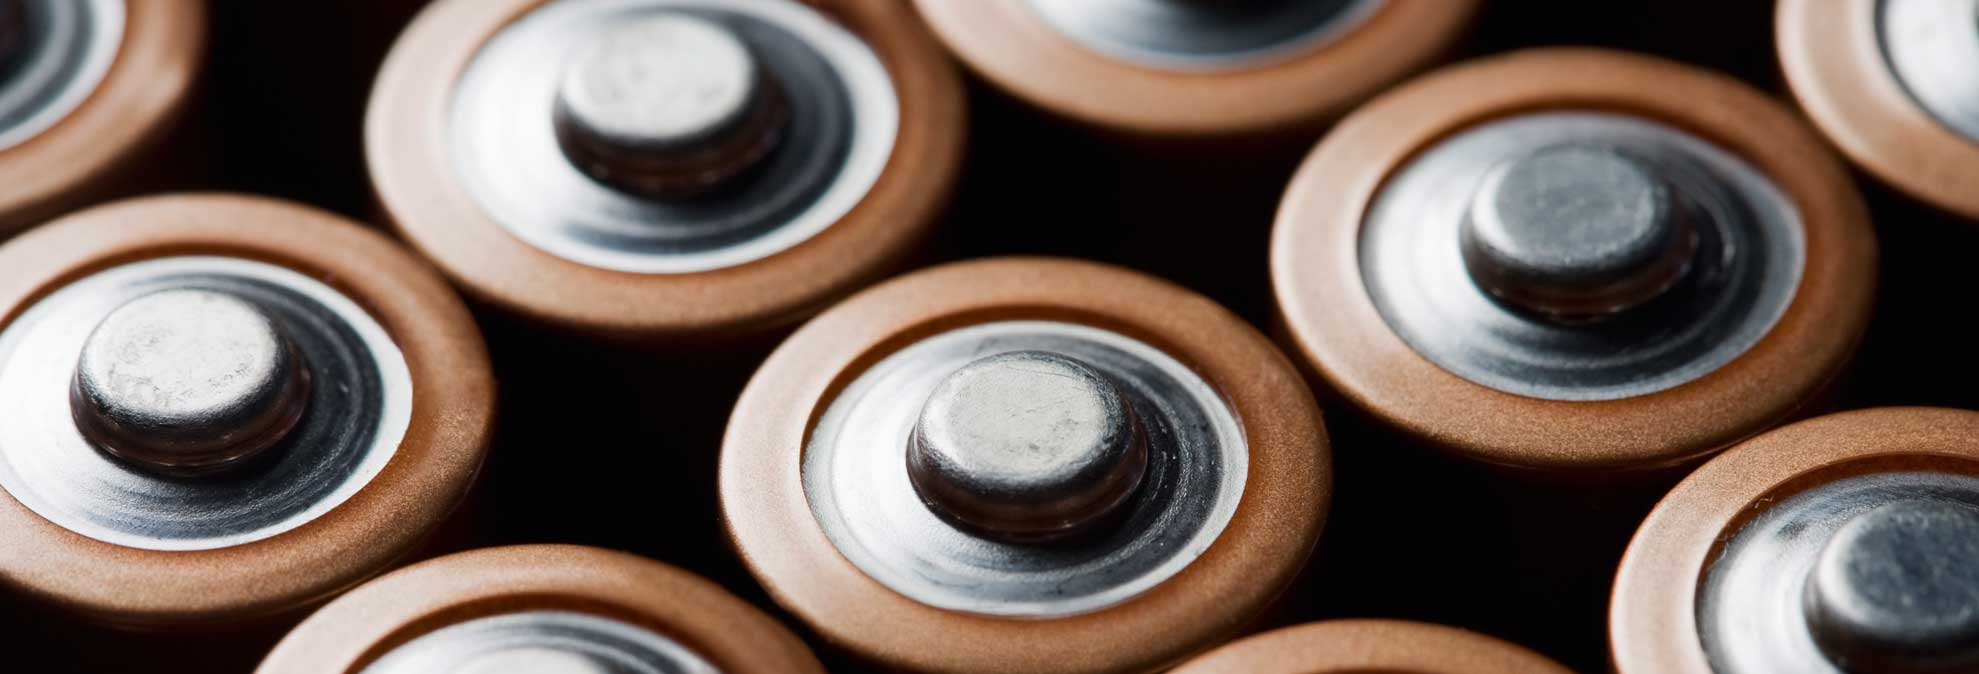 Best Battery Buying Guide - Consumer Reports